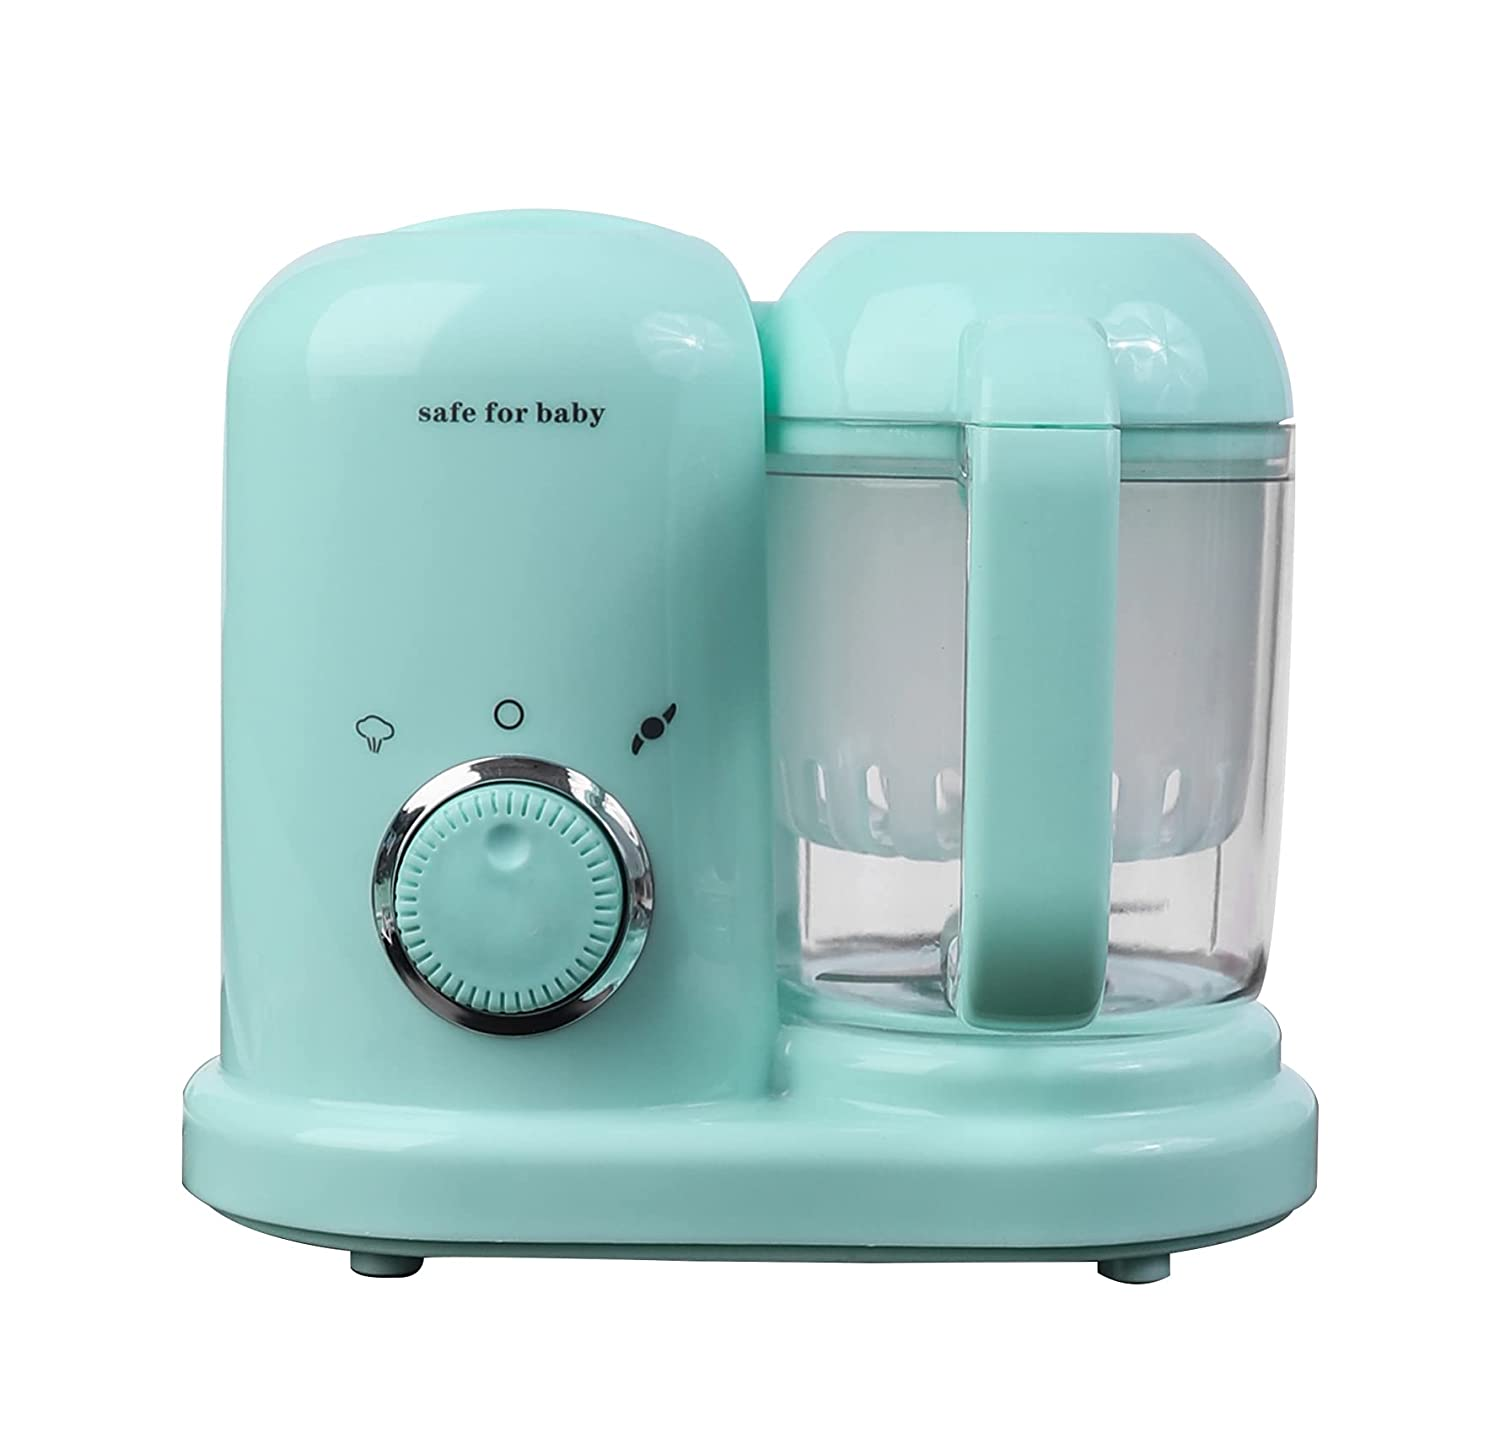 Baby Food Maker   Baby Blender Food Maker   Baby Food Processor, Baby Food Nutrition Adding Processor Automatic Cooking and Grinding of Fruit Vegetable and Fish Meat Baby Essentials